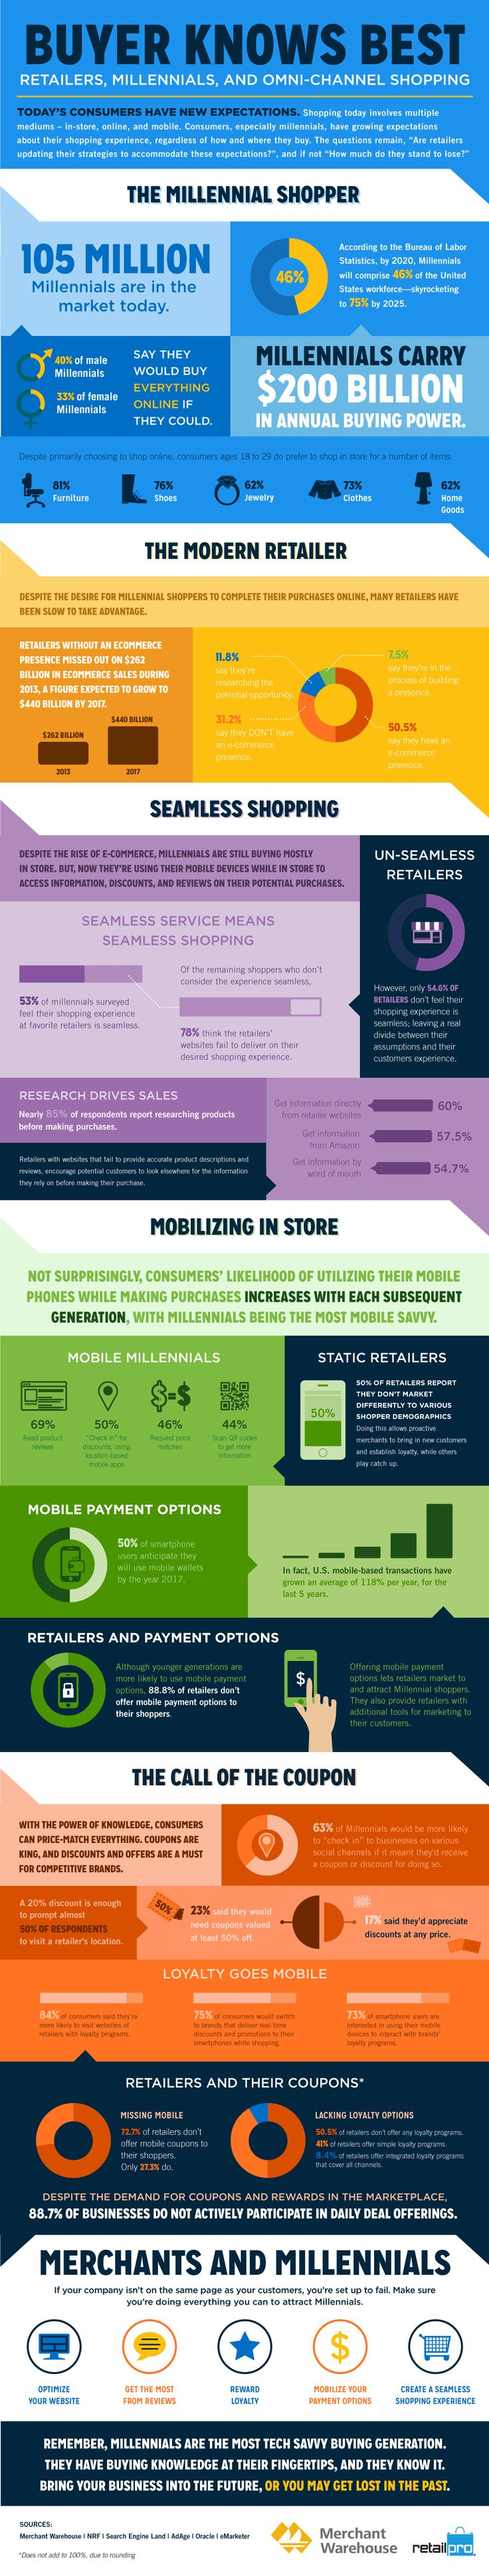 Digital-Marketing-Buyer-Knows-Best-Retailers-Millennials-and-Omni-Channel-Shopping-infographic Digital Marketing : Buyer Knows Best: Retailers, Millennials, and Omni-Channel Shopping #infographic...